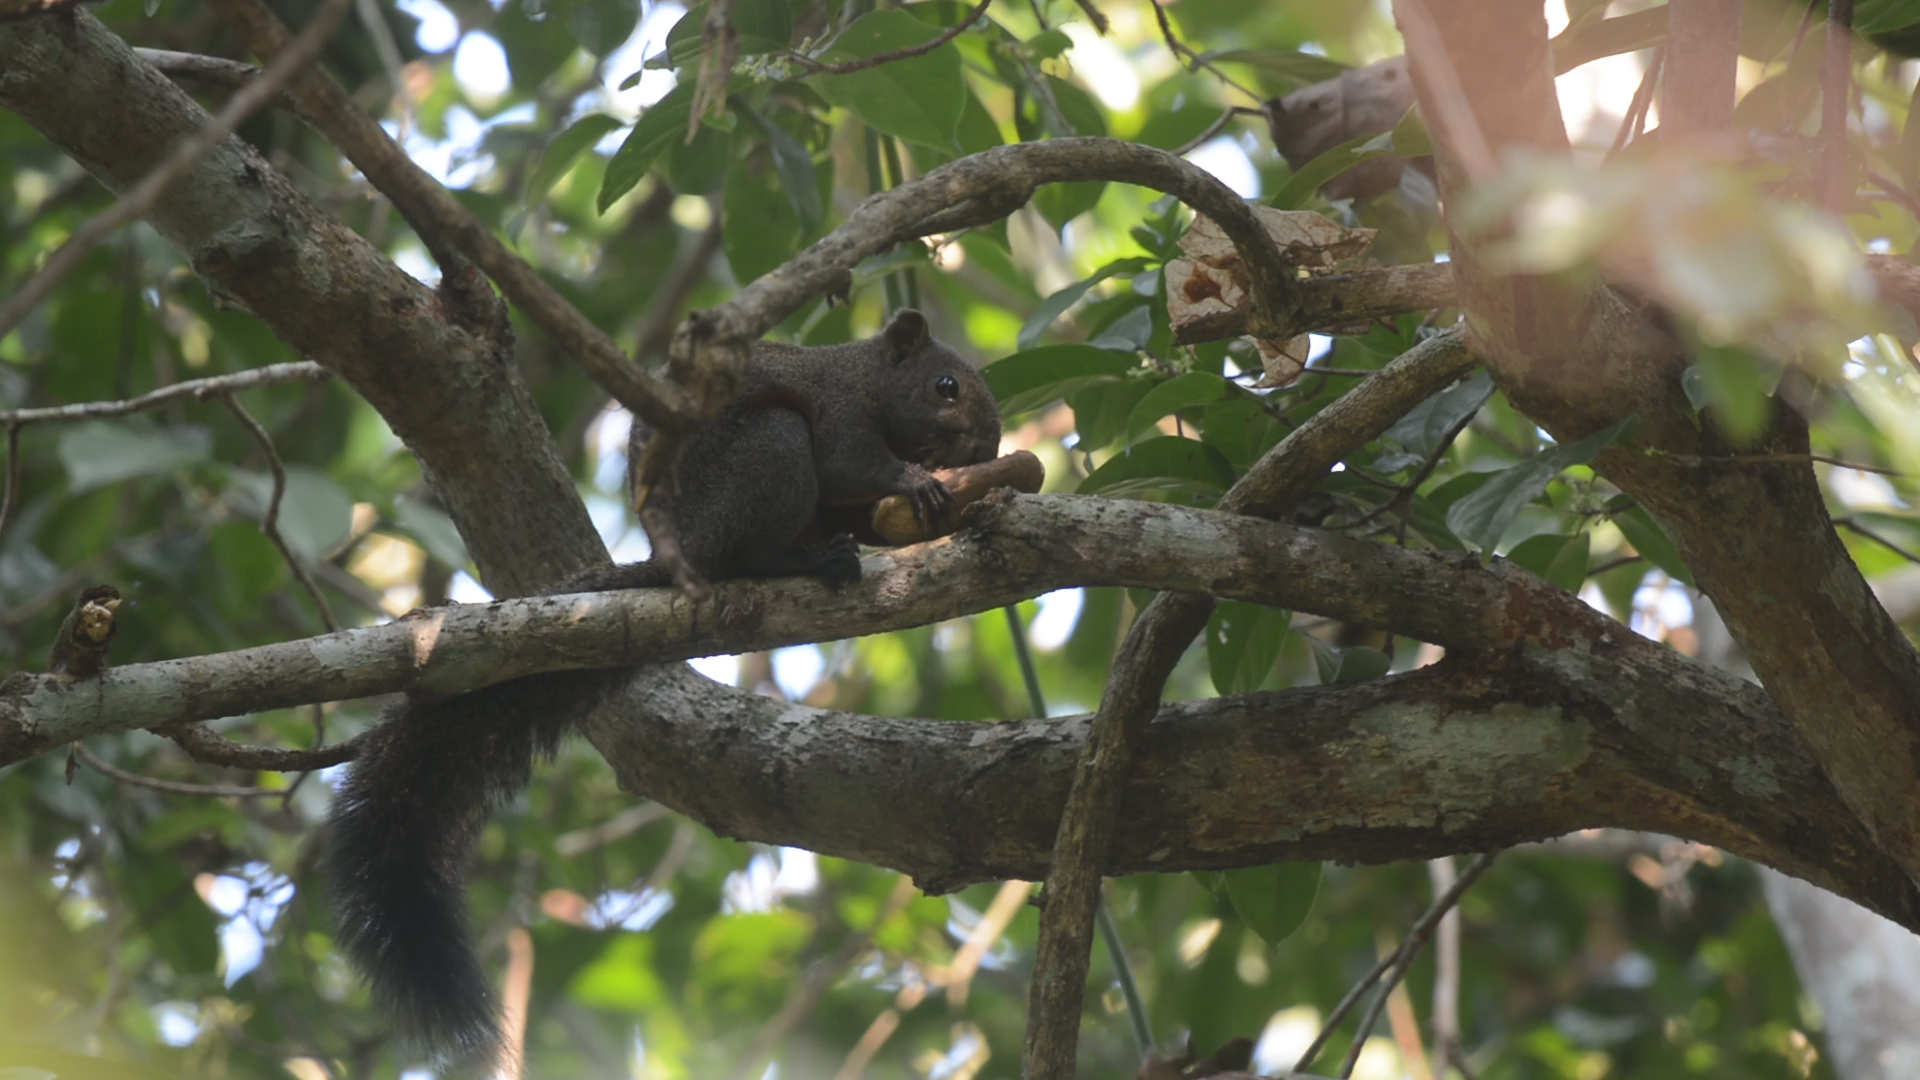 Pallas's squirrels primarily feed on fruits and seeds though it adapts to seasonal changes and also consumes leaves, flowers, as well as insects and bird eggs on occasion. Photo: Abir Jain